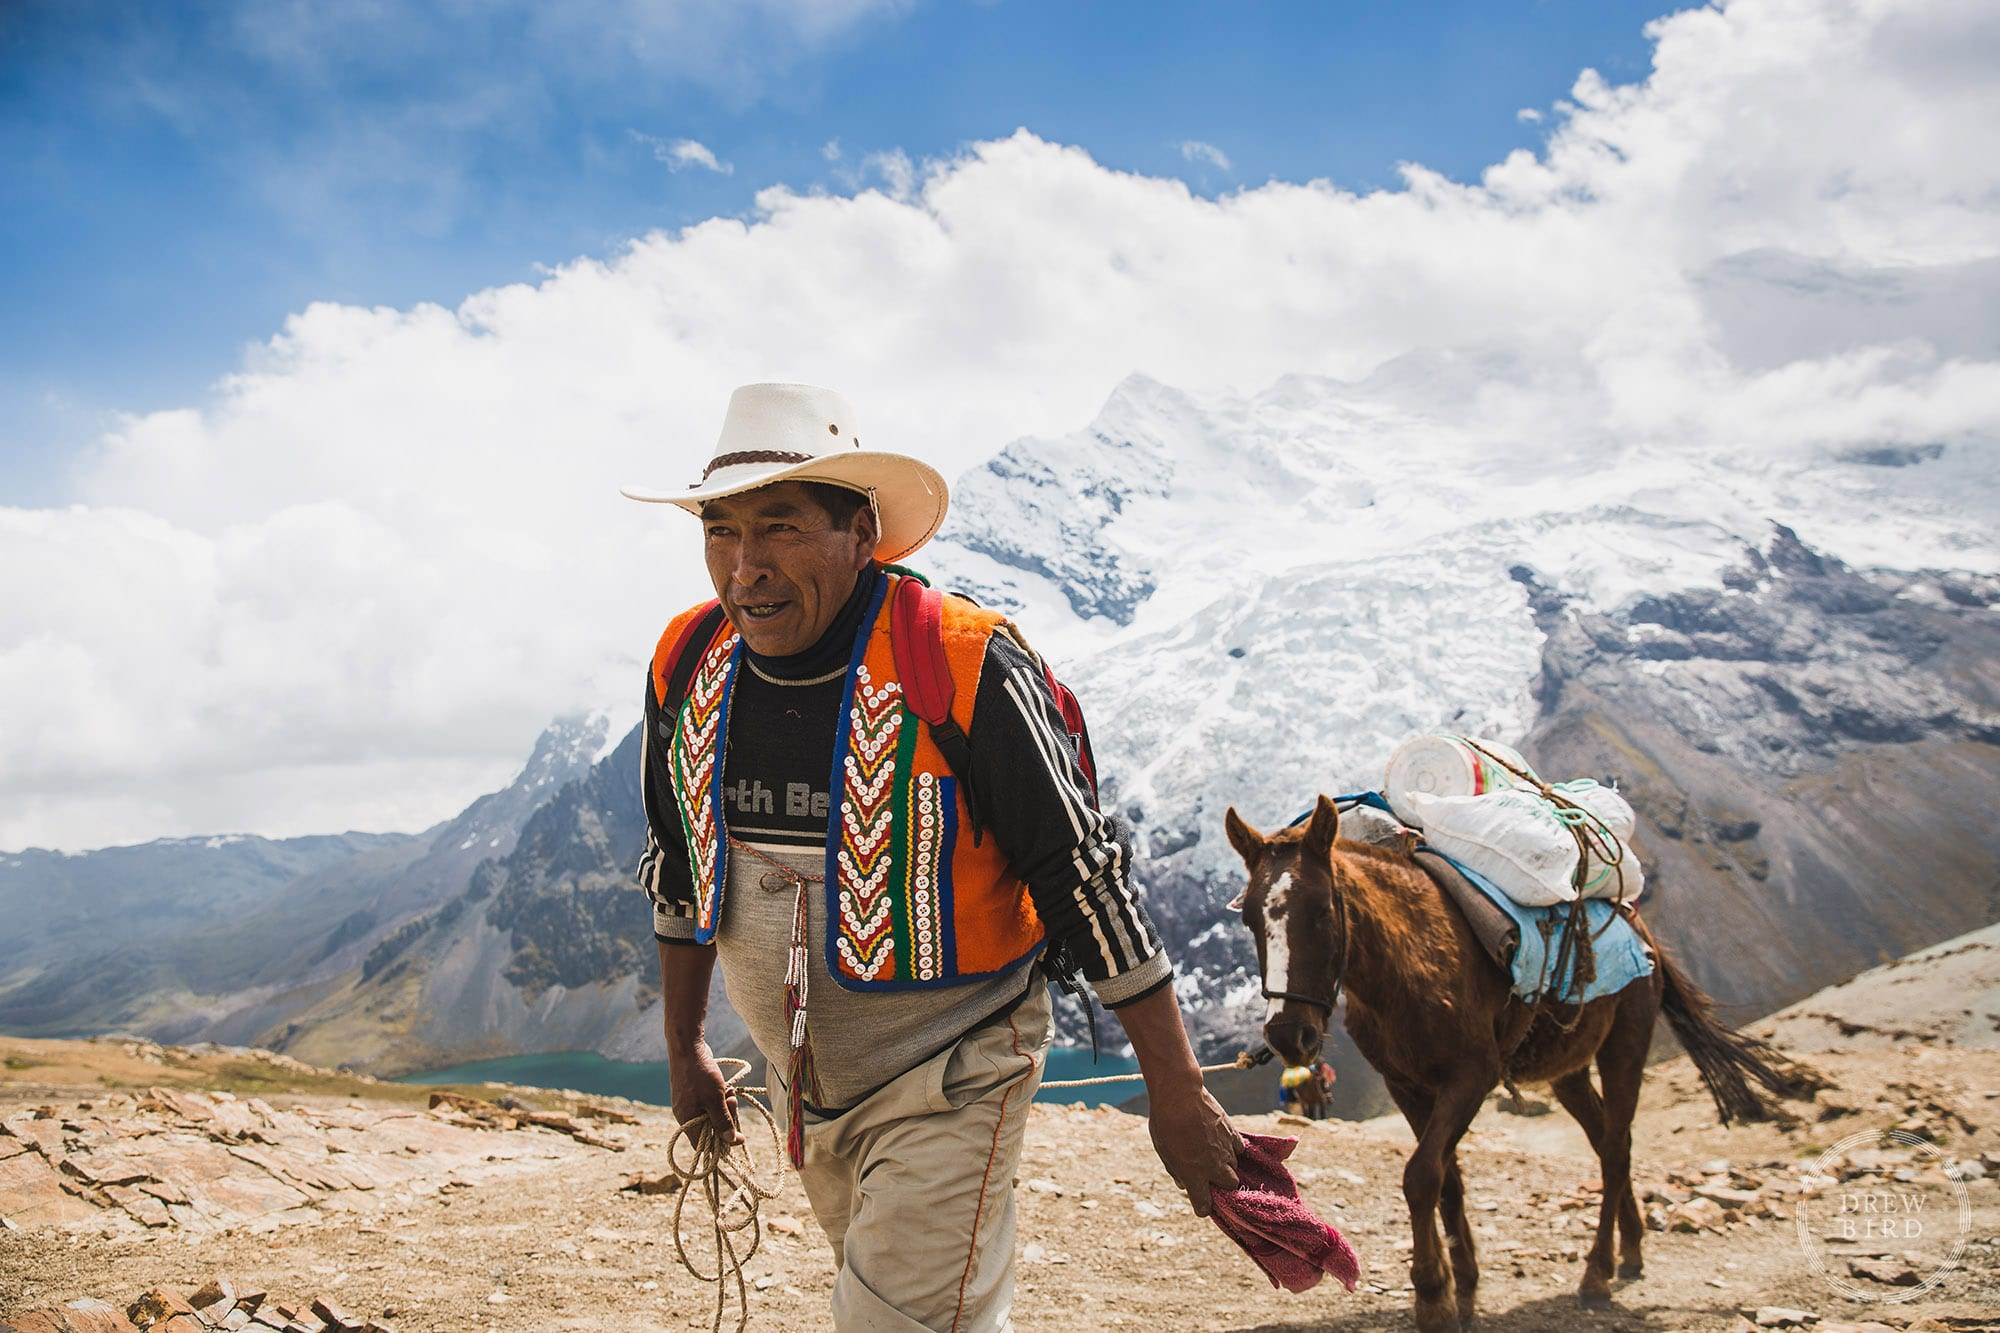 Man with horses and donkeys and expidition gear in the Andes Mountains. A photo story about climate change and the melting of the Ausangate glacier.